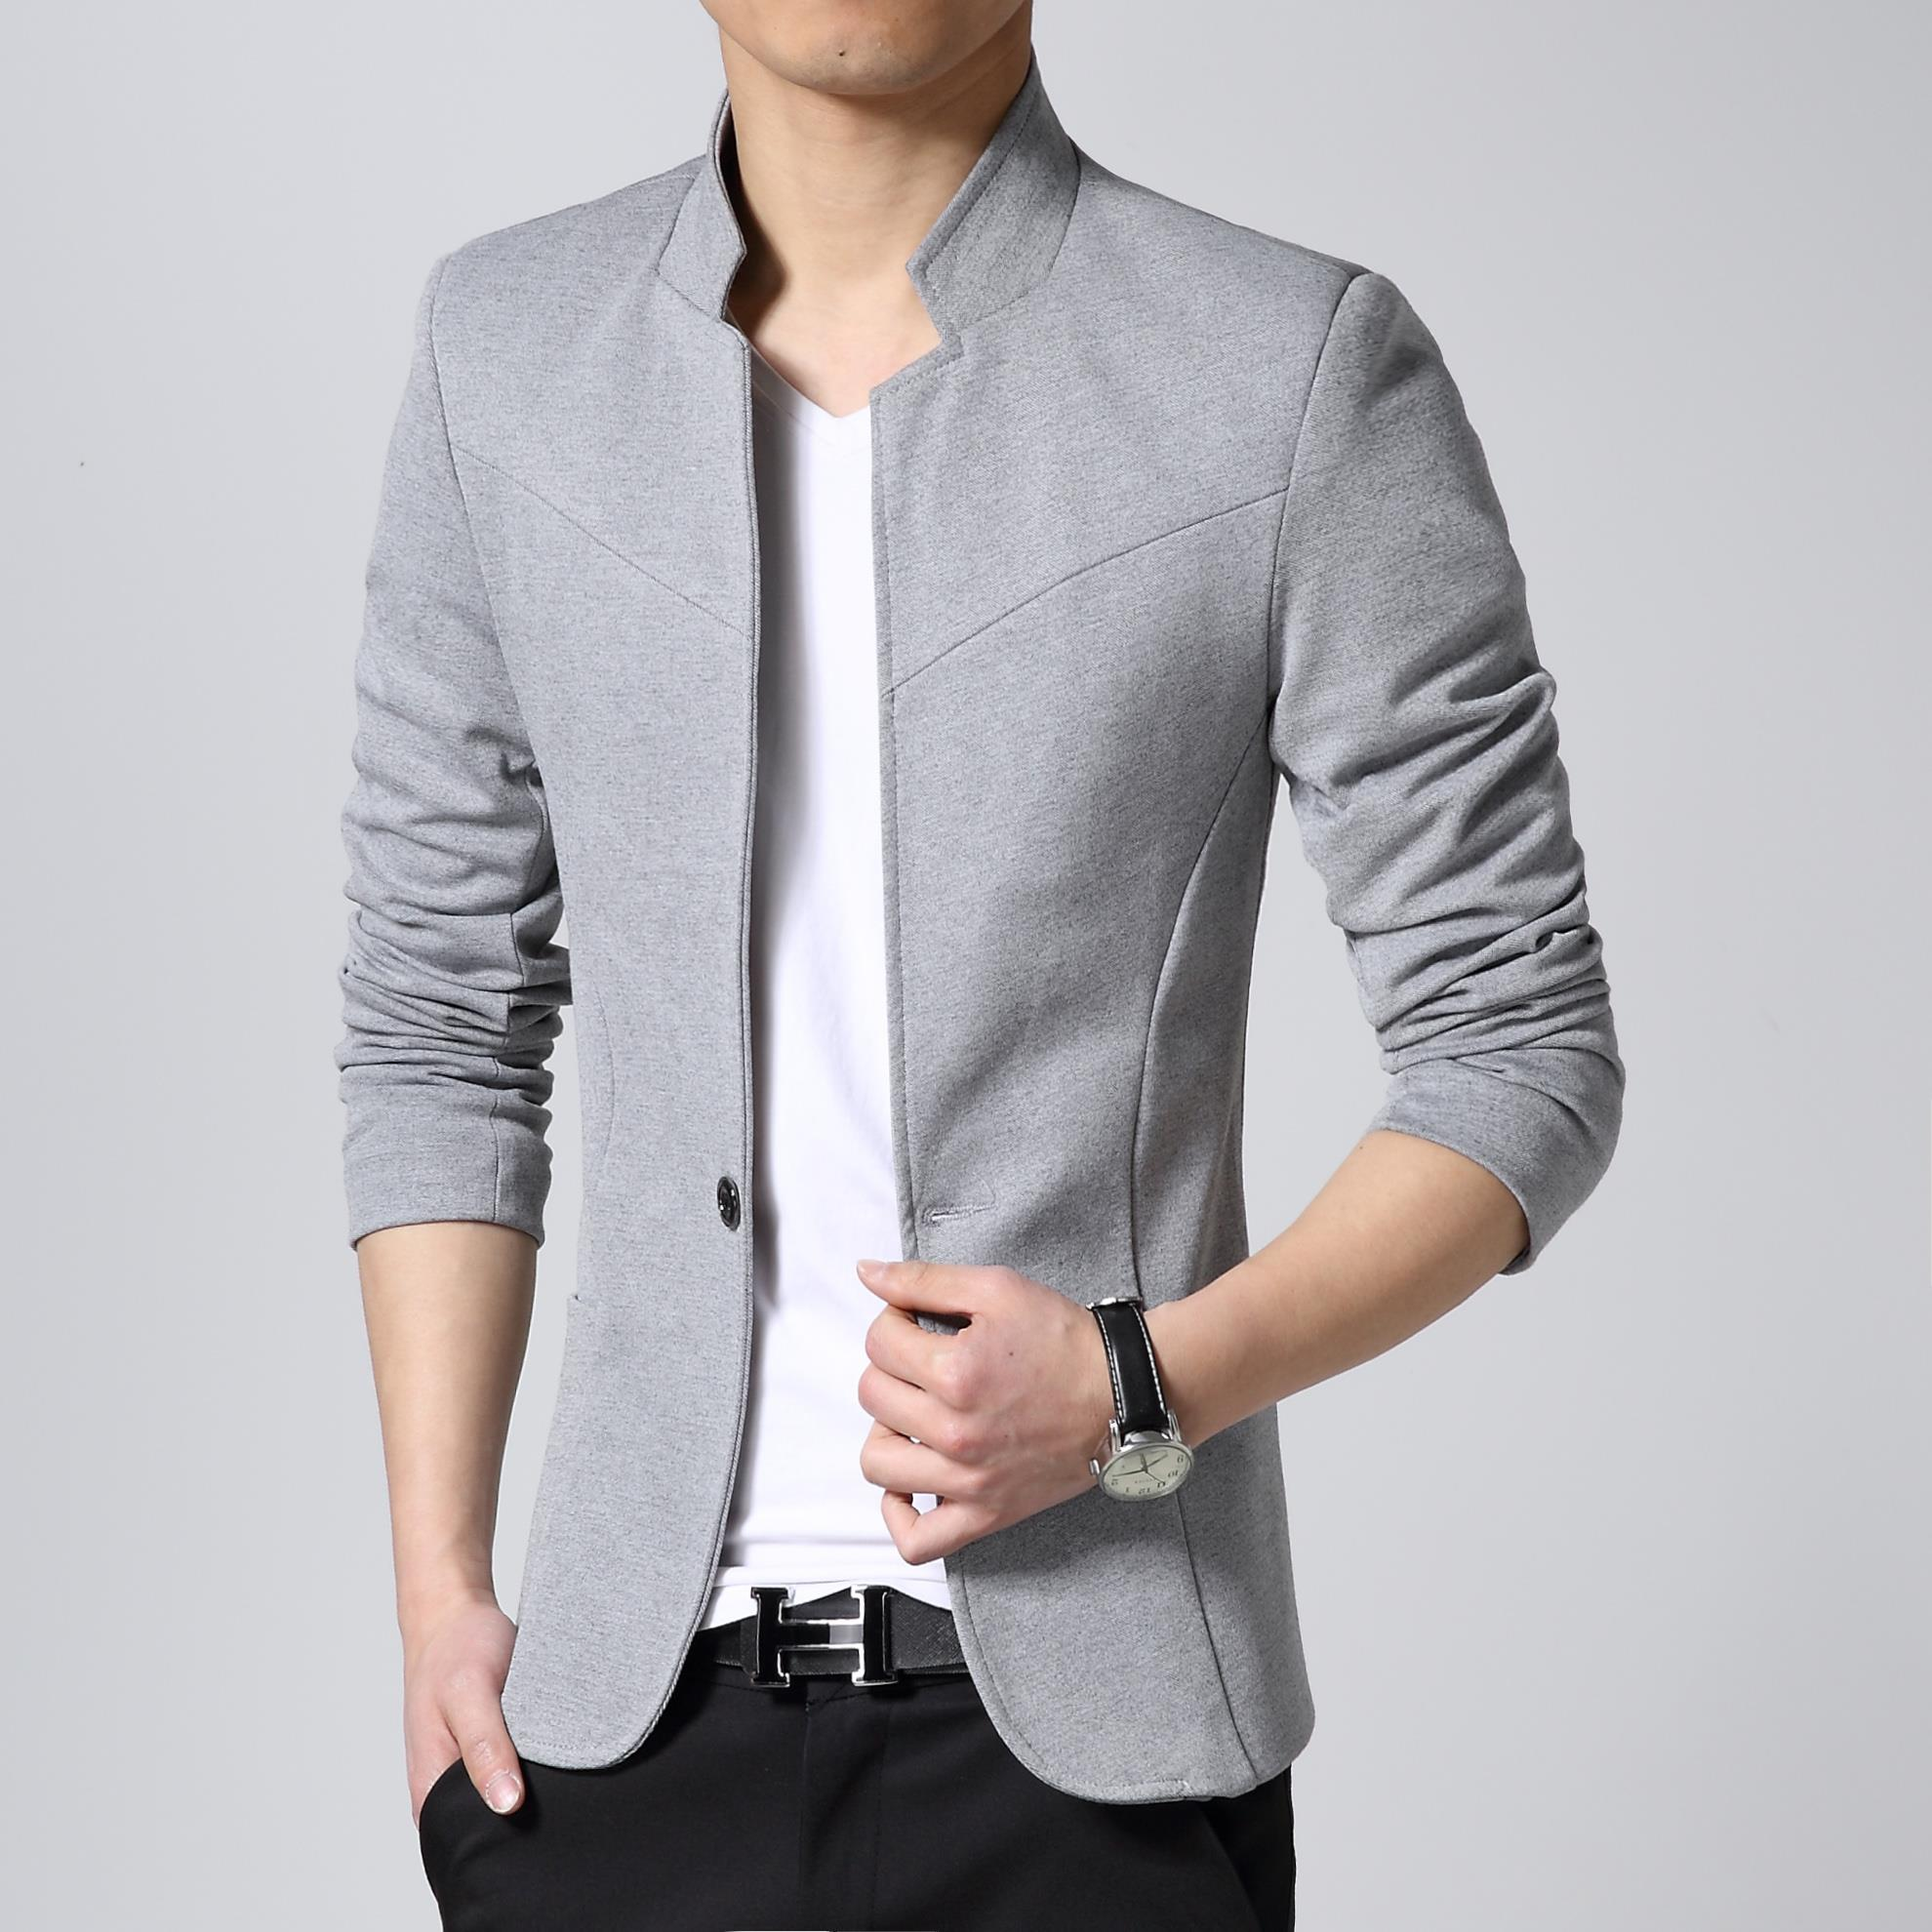 Shop burgundy sport coat blazer, royal blue sport coat mens, tan sport coat navy pants and blazers for men at xianggangdishini.gq From wedding suit and stylish to casual, we have made finding many sport coat and Mens blazers.